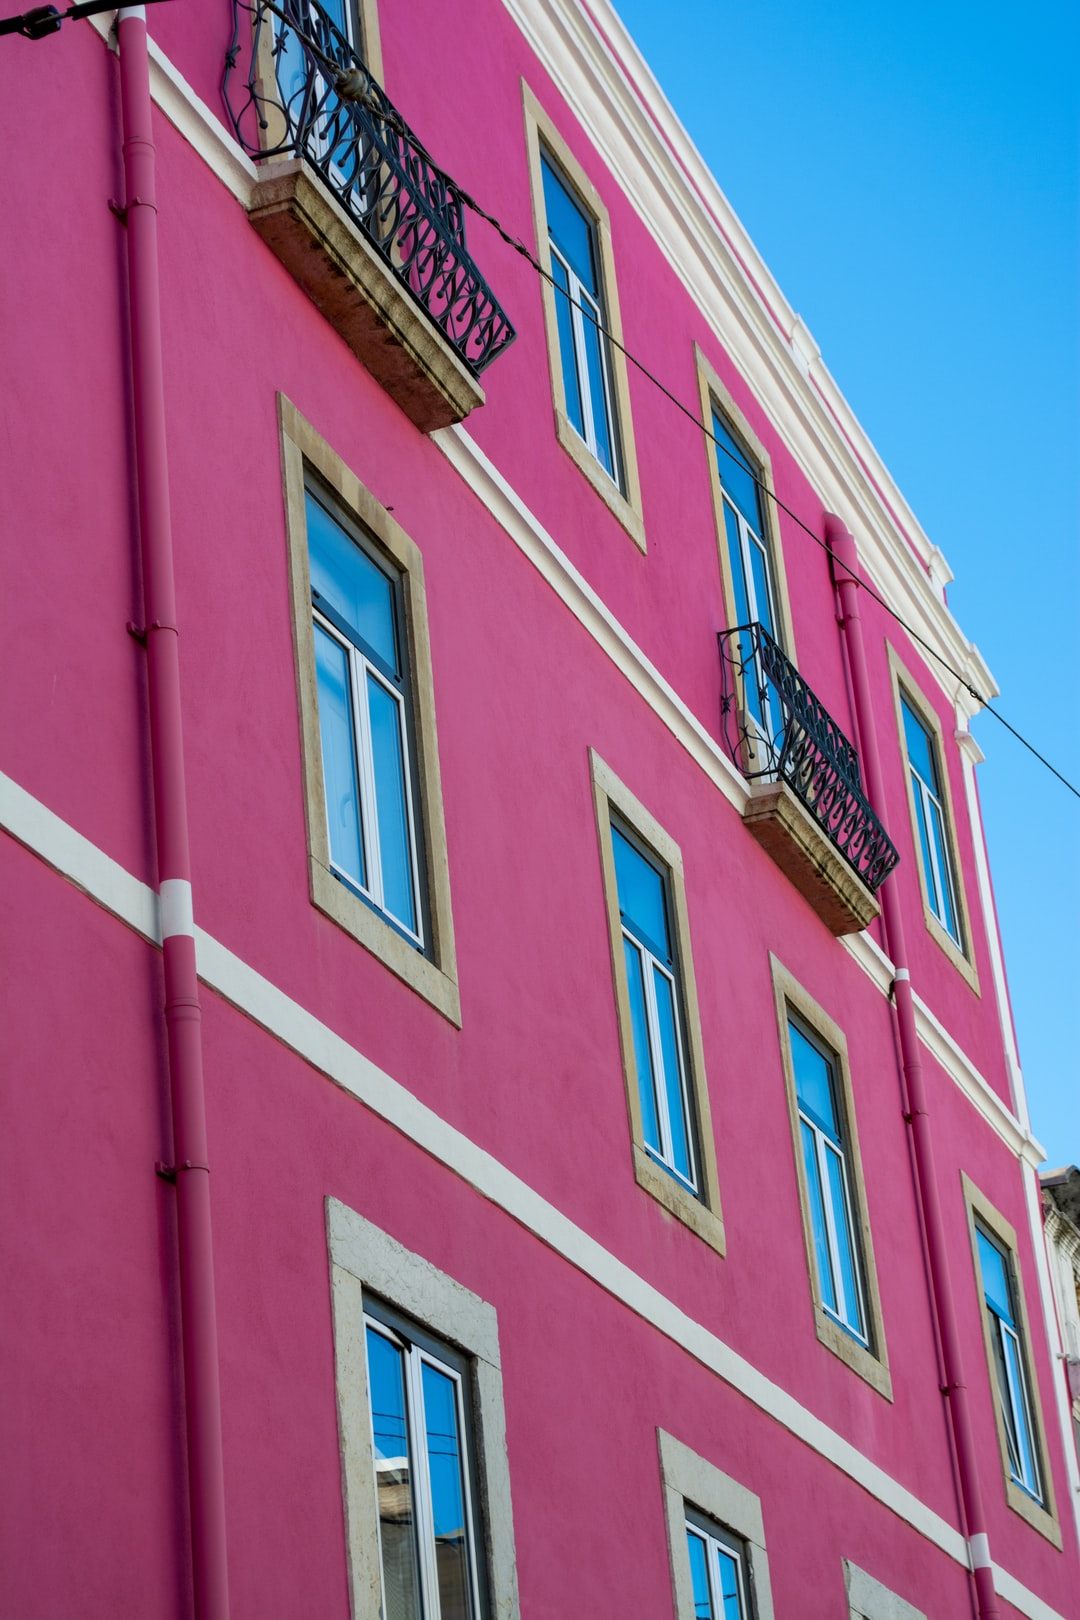 A pink house rising into the blue sky